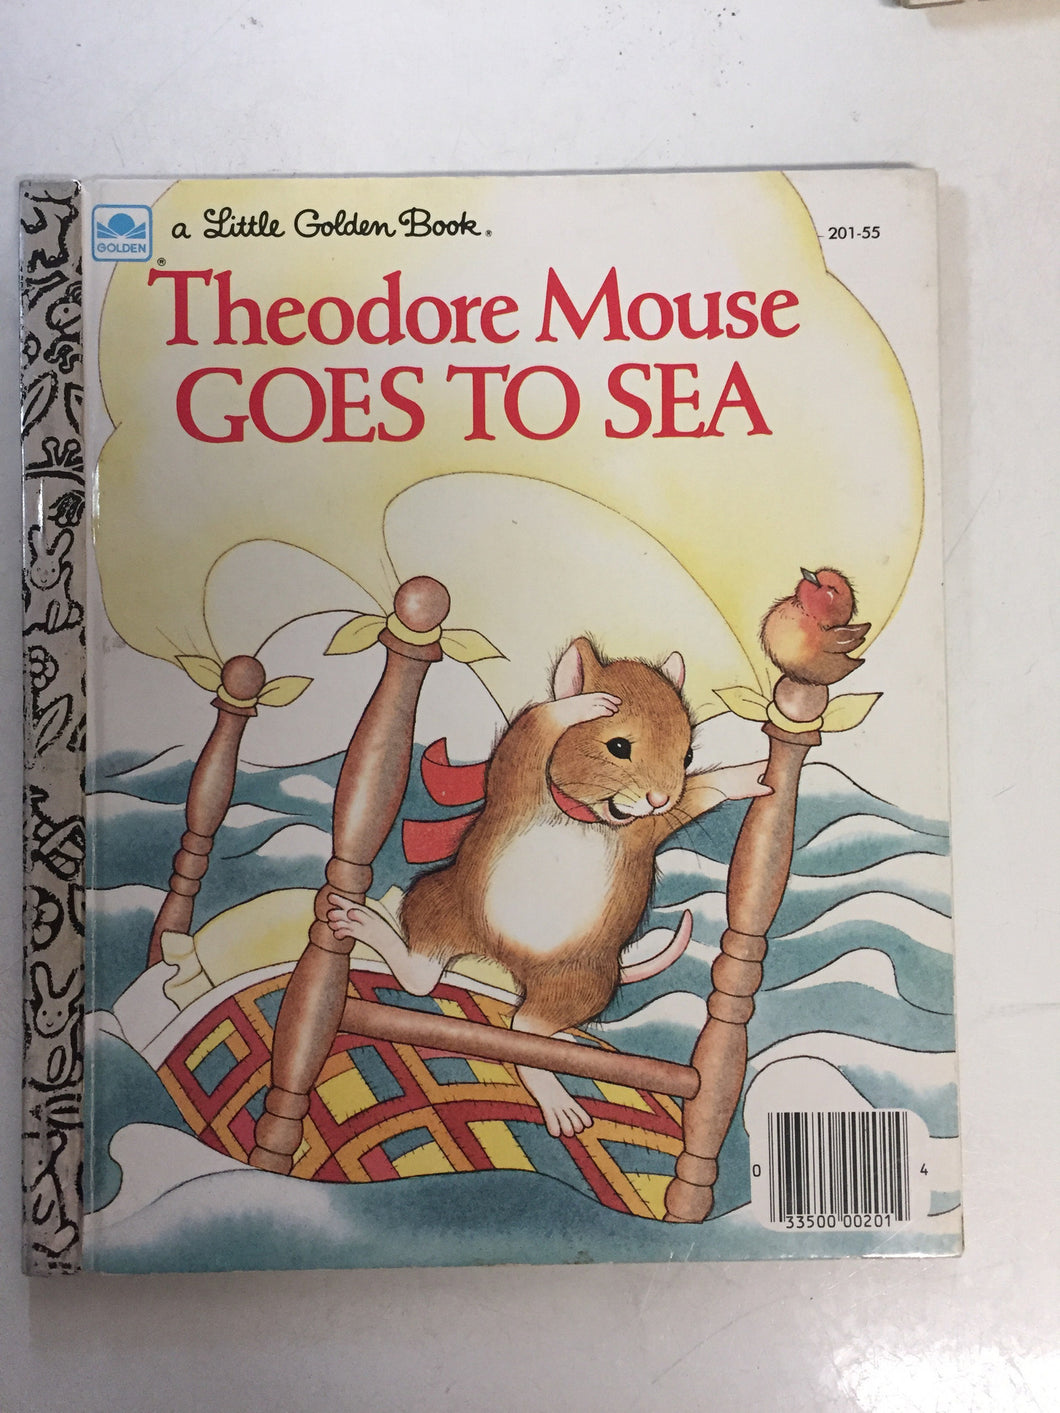 Theodore Mouse Goes To Sea - Slickcatbooks